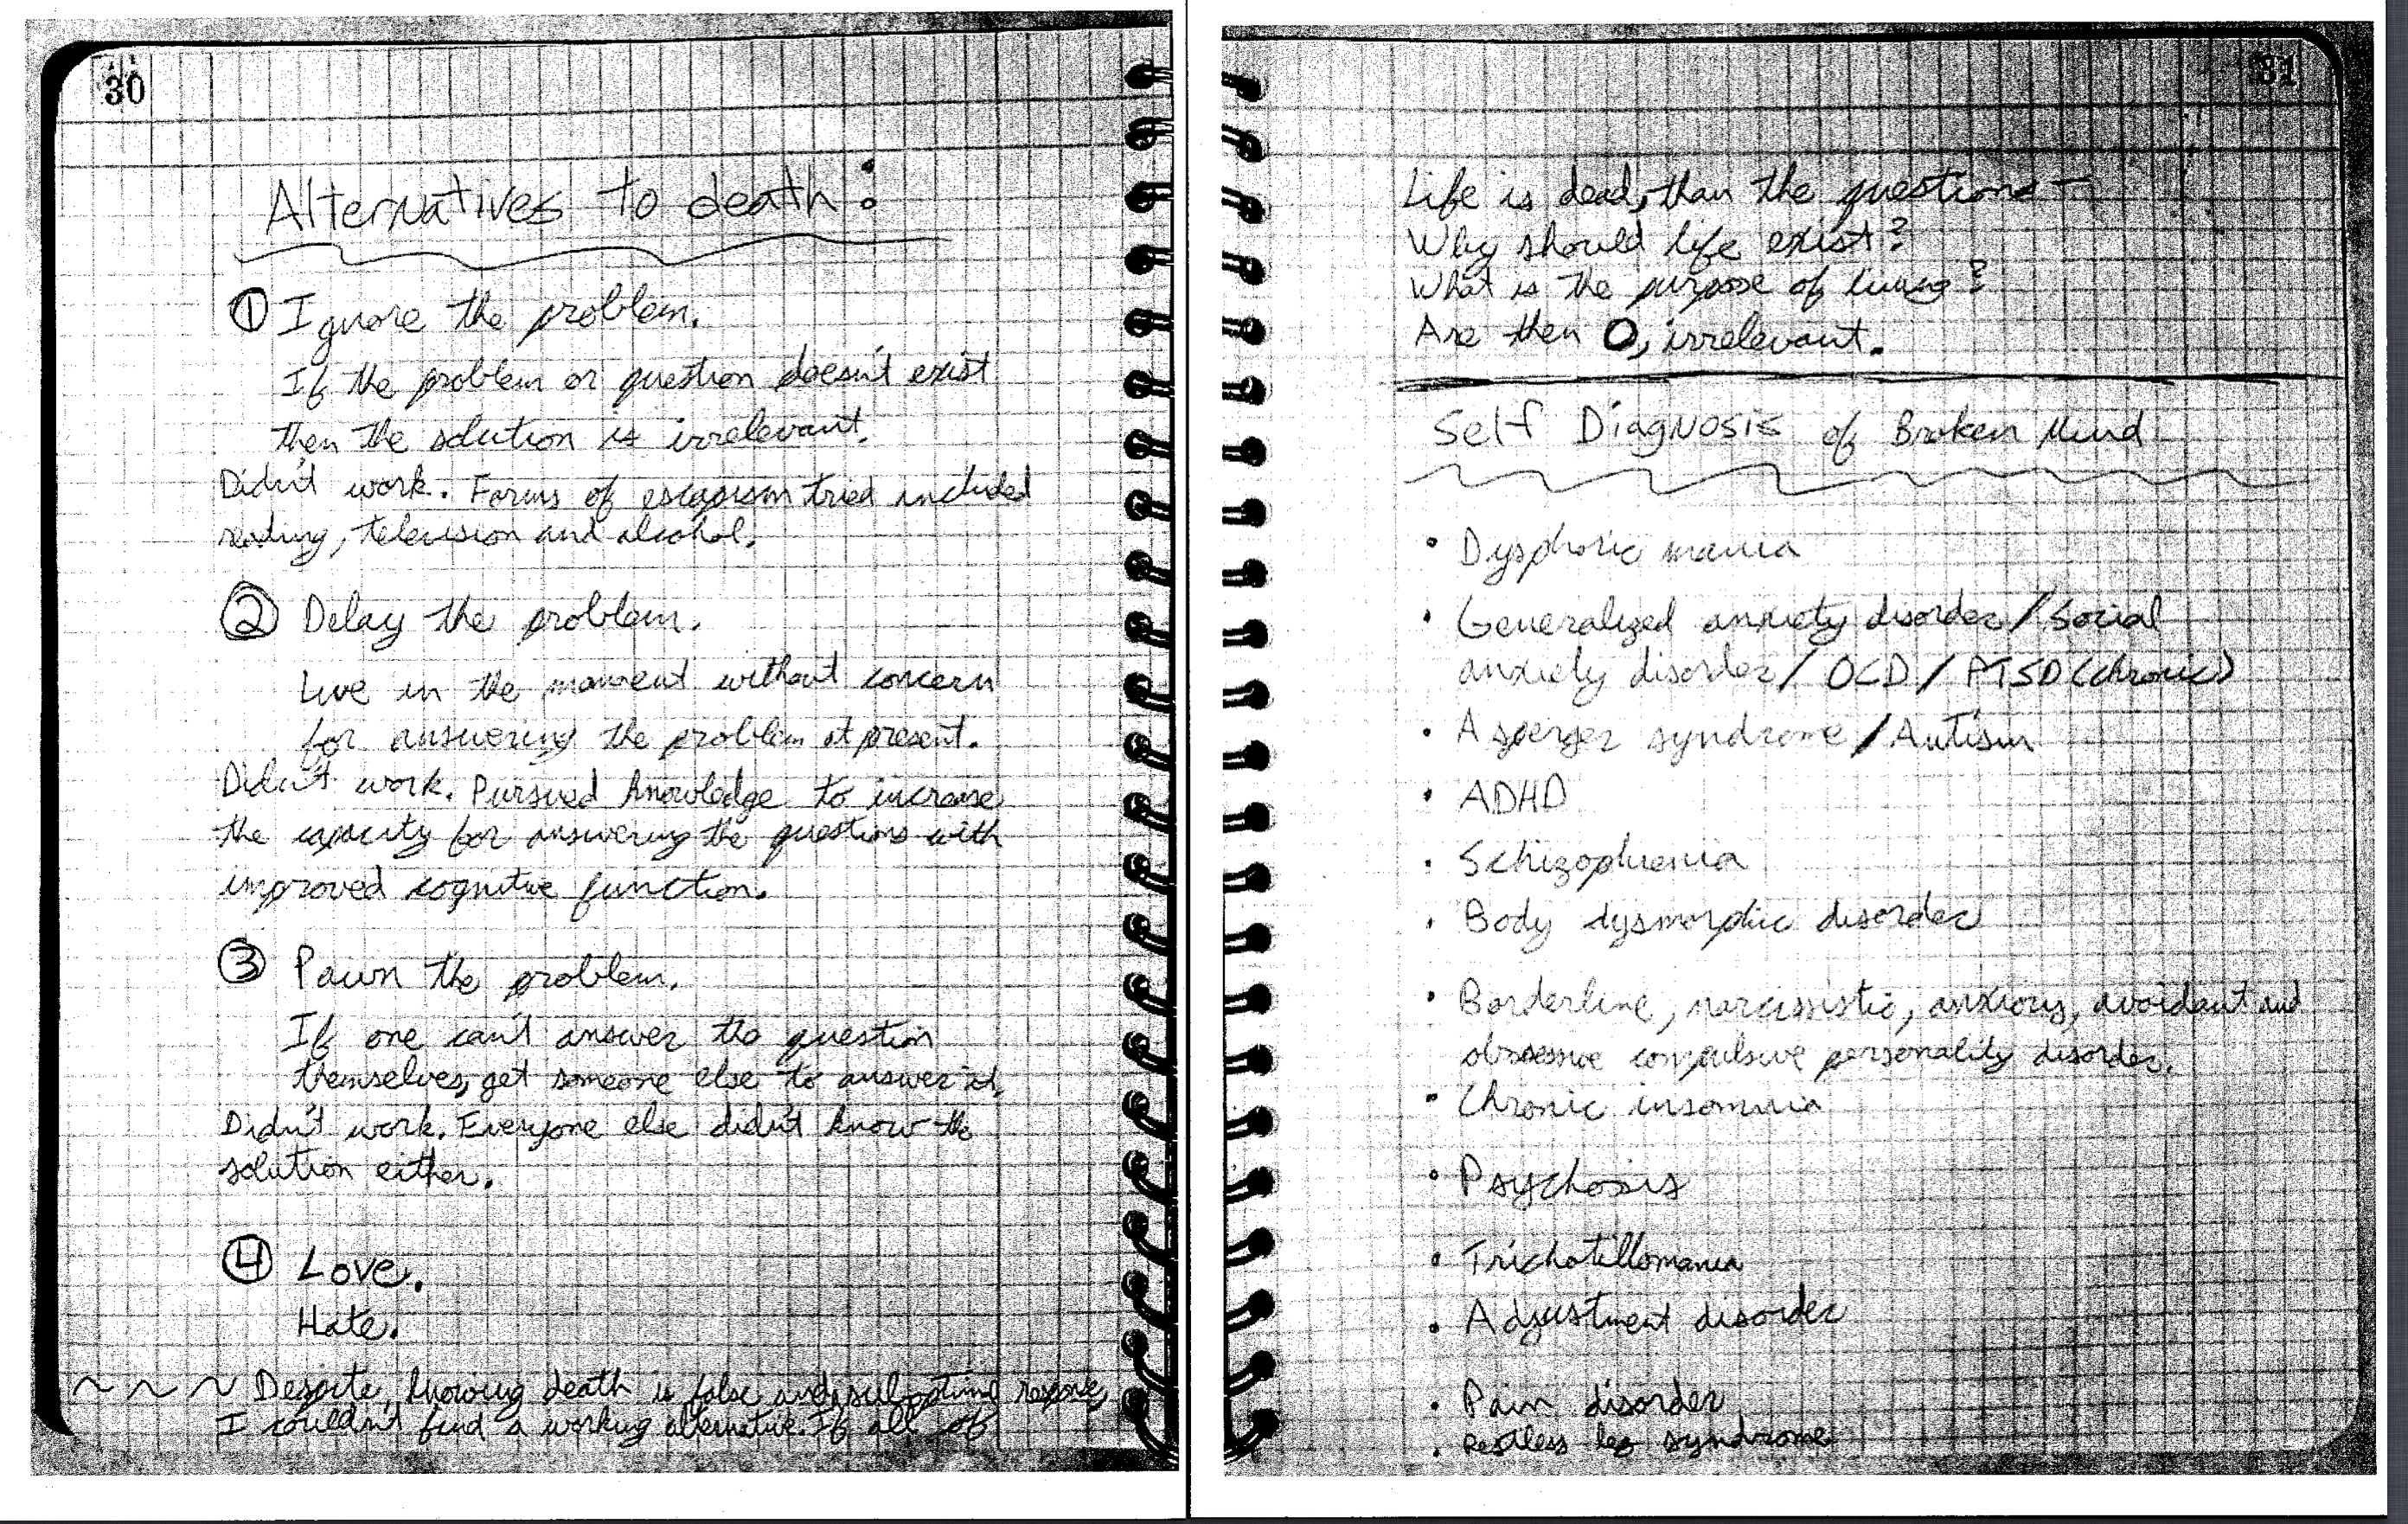 A portion of Aurora shooter James Holmes' notebook, after it was presented as evidence in the Holmes murder trial on May 26, 2015, in Centennial, Colo.